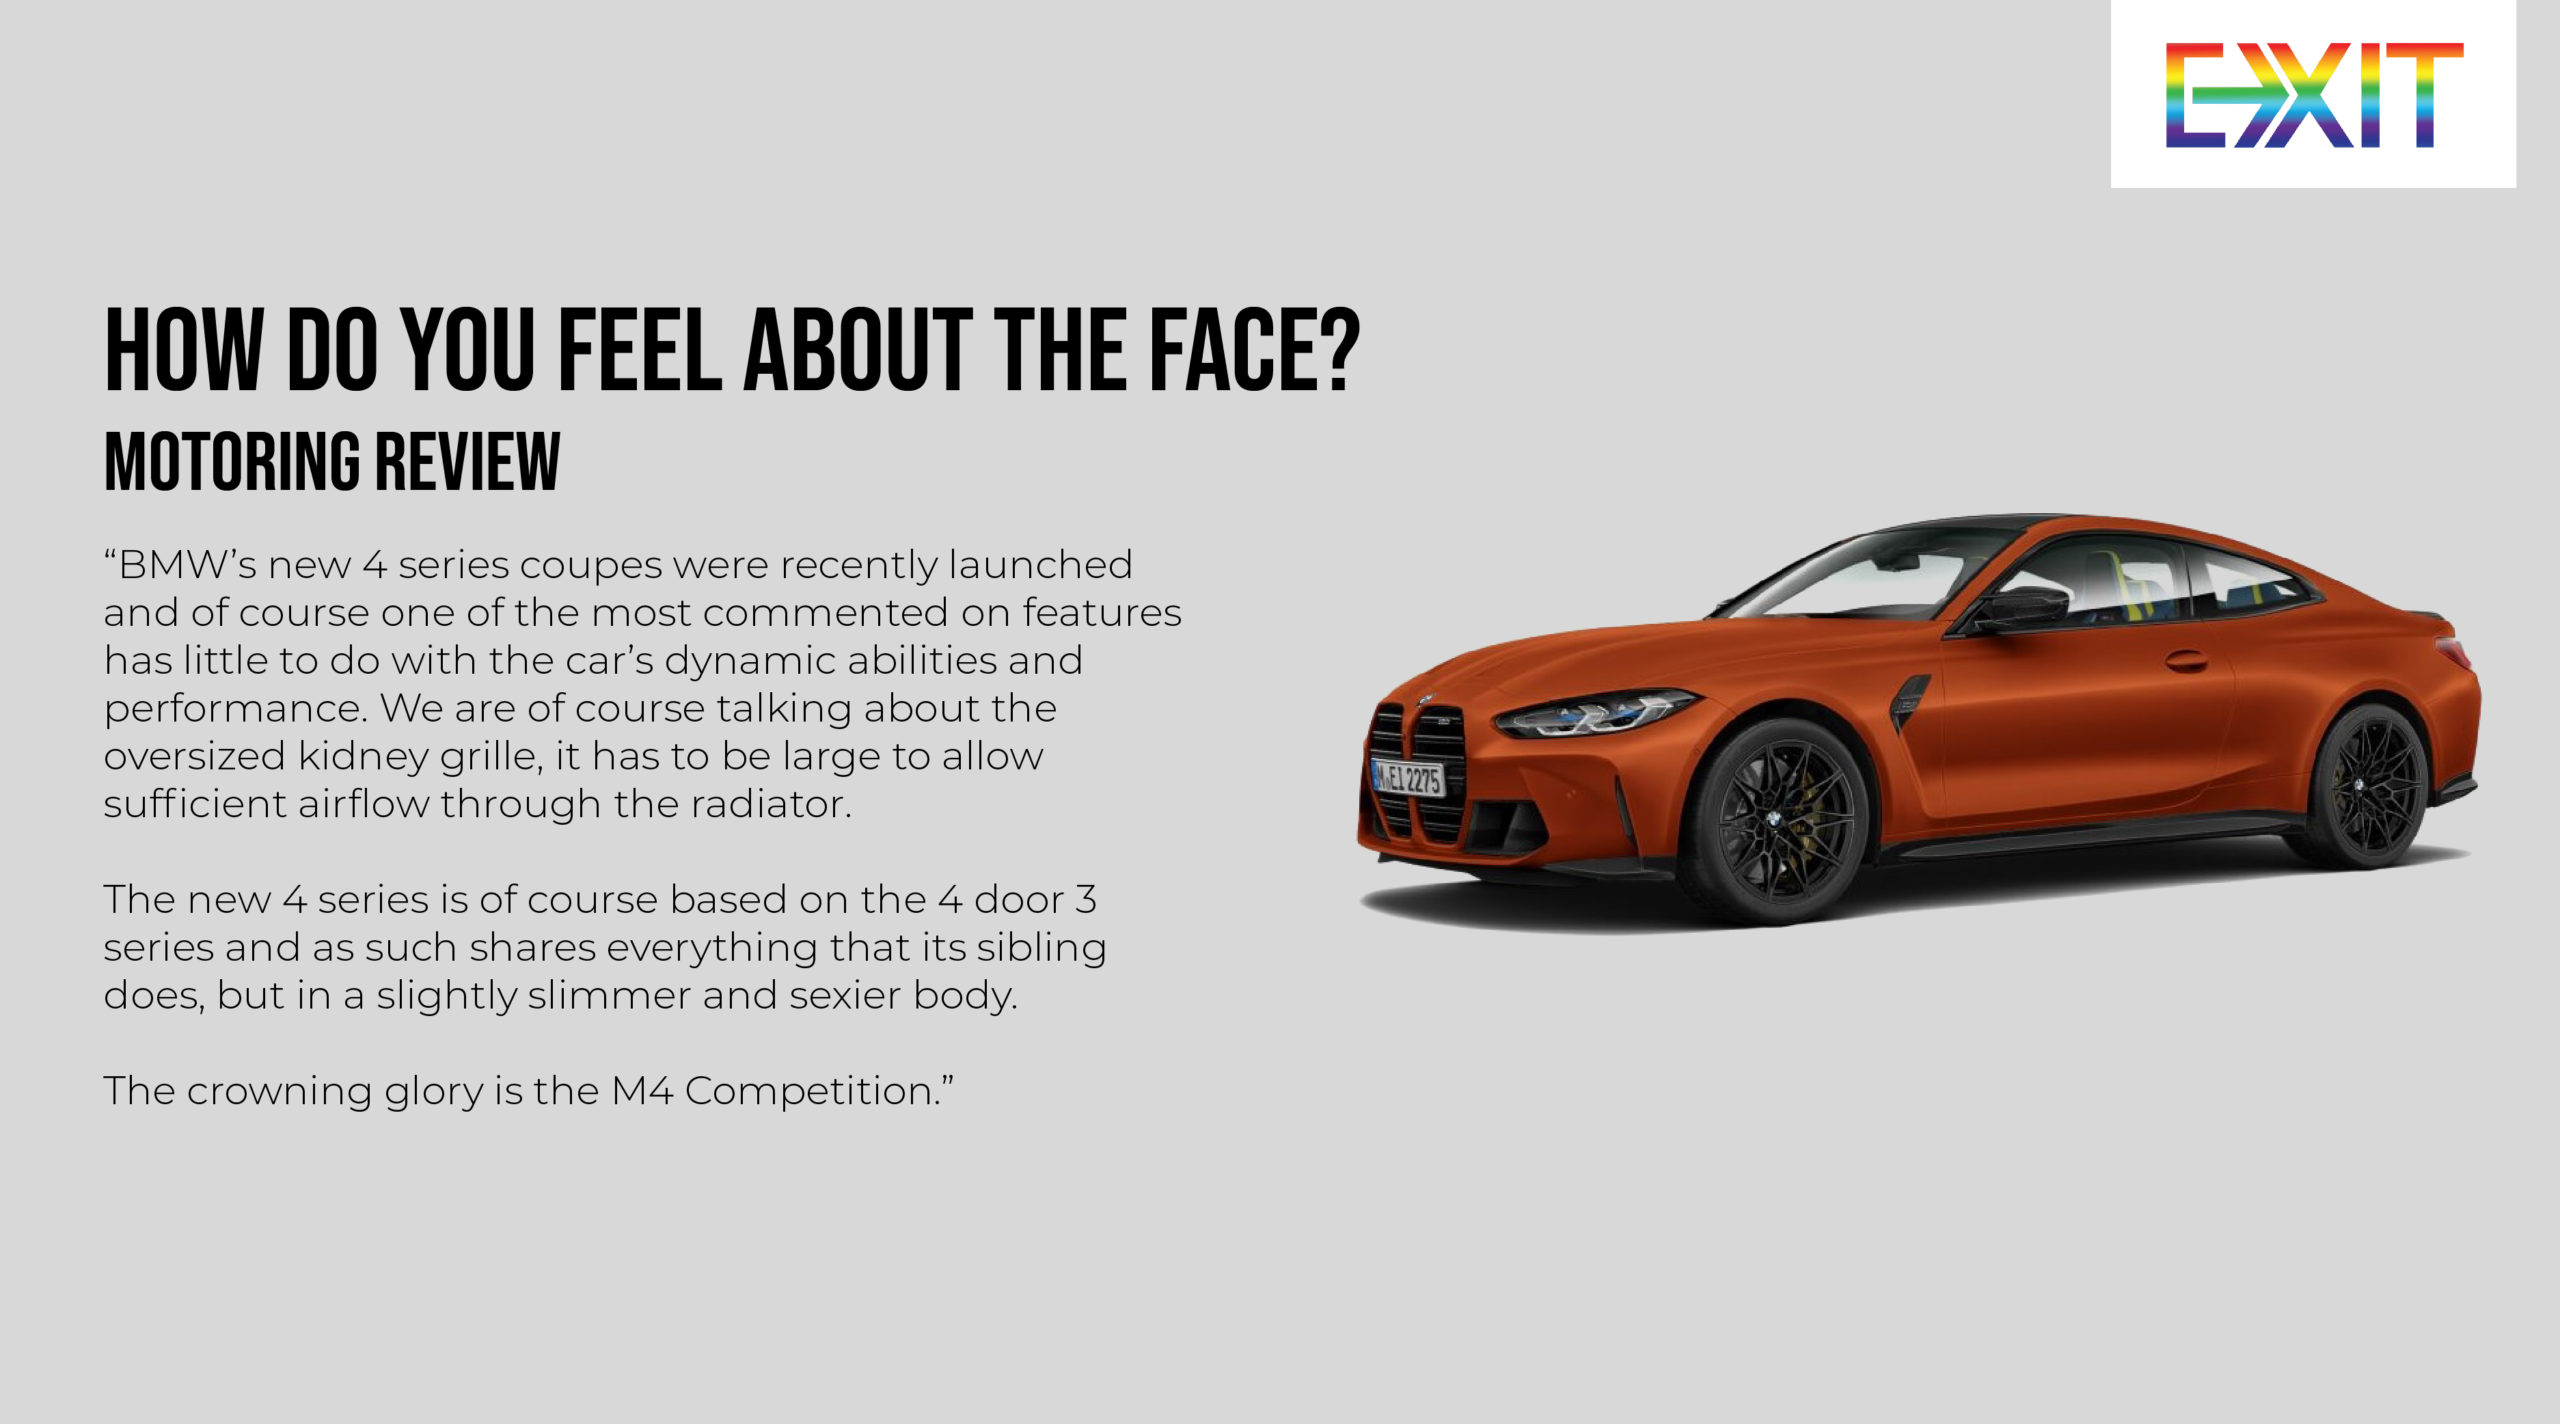 MOTORING: HOW DO YOU FEEL ABOUT THE FACE?